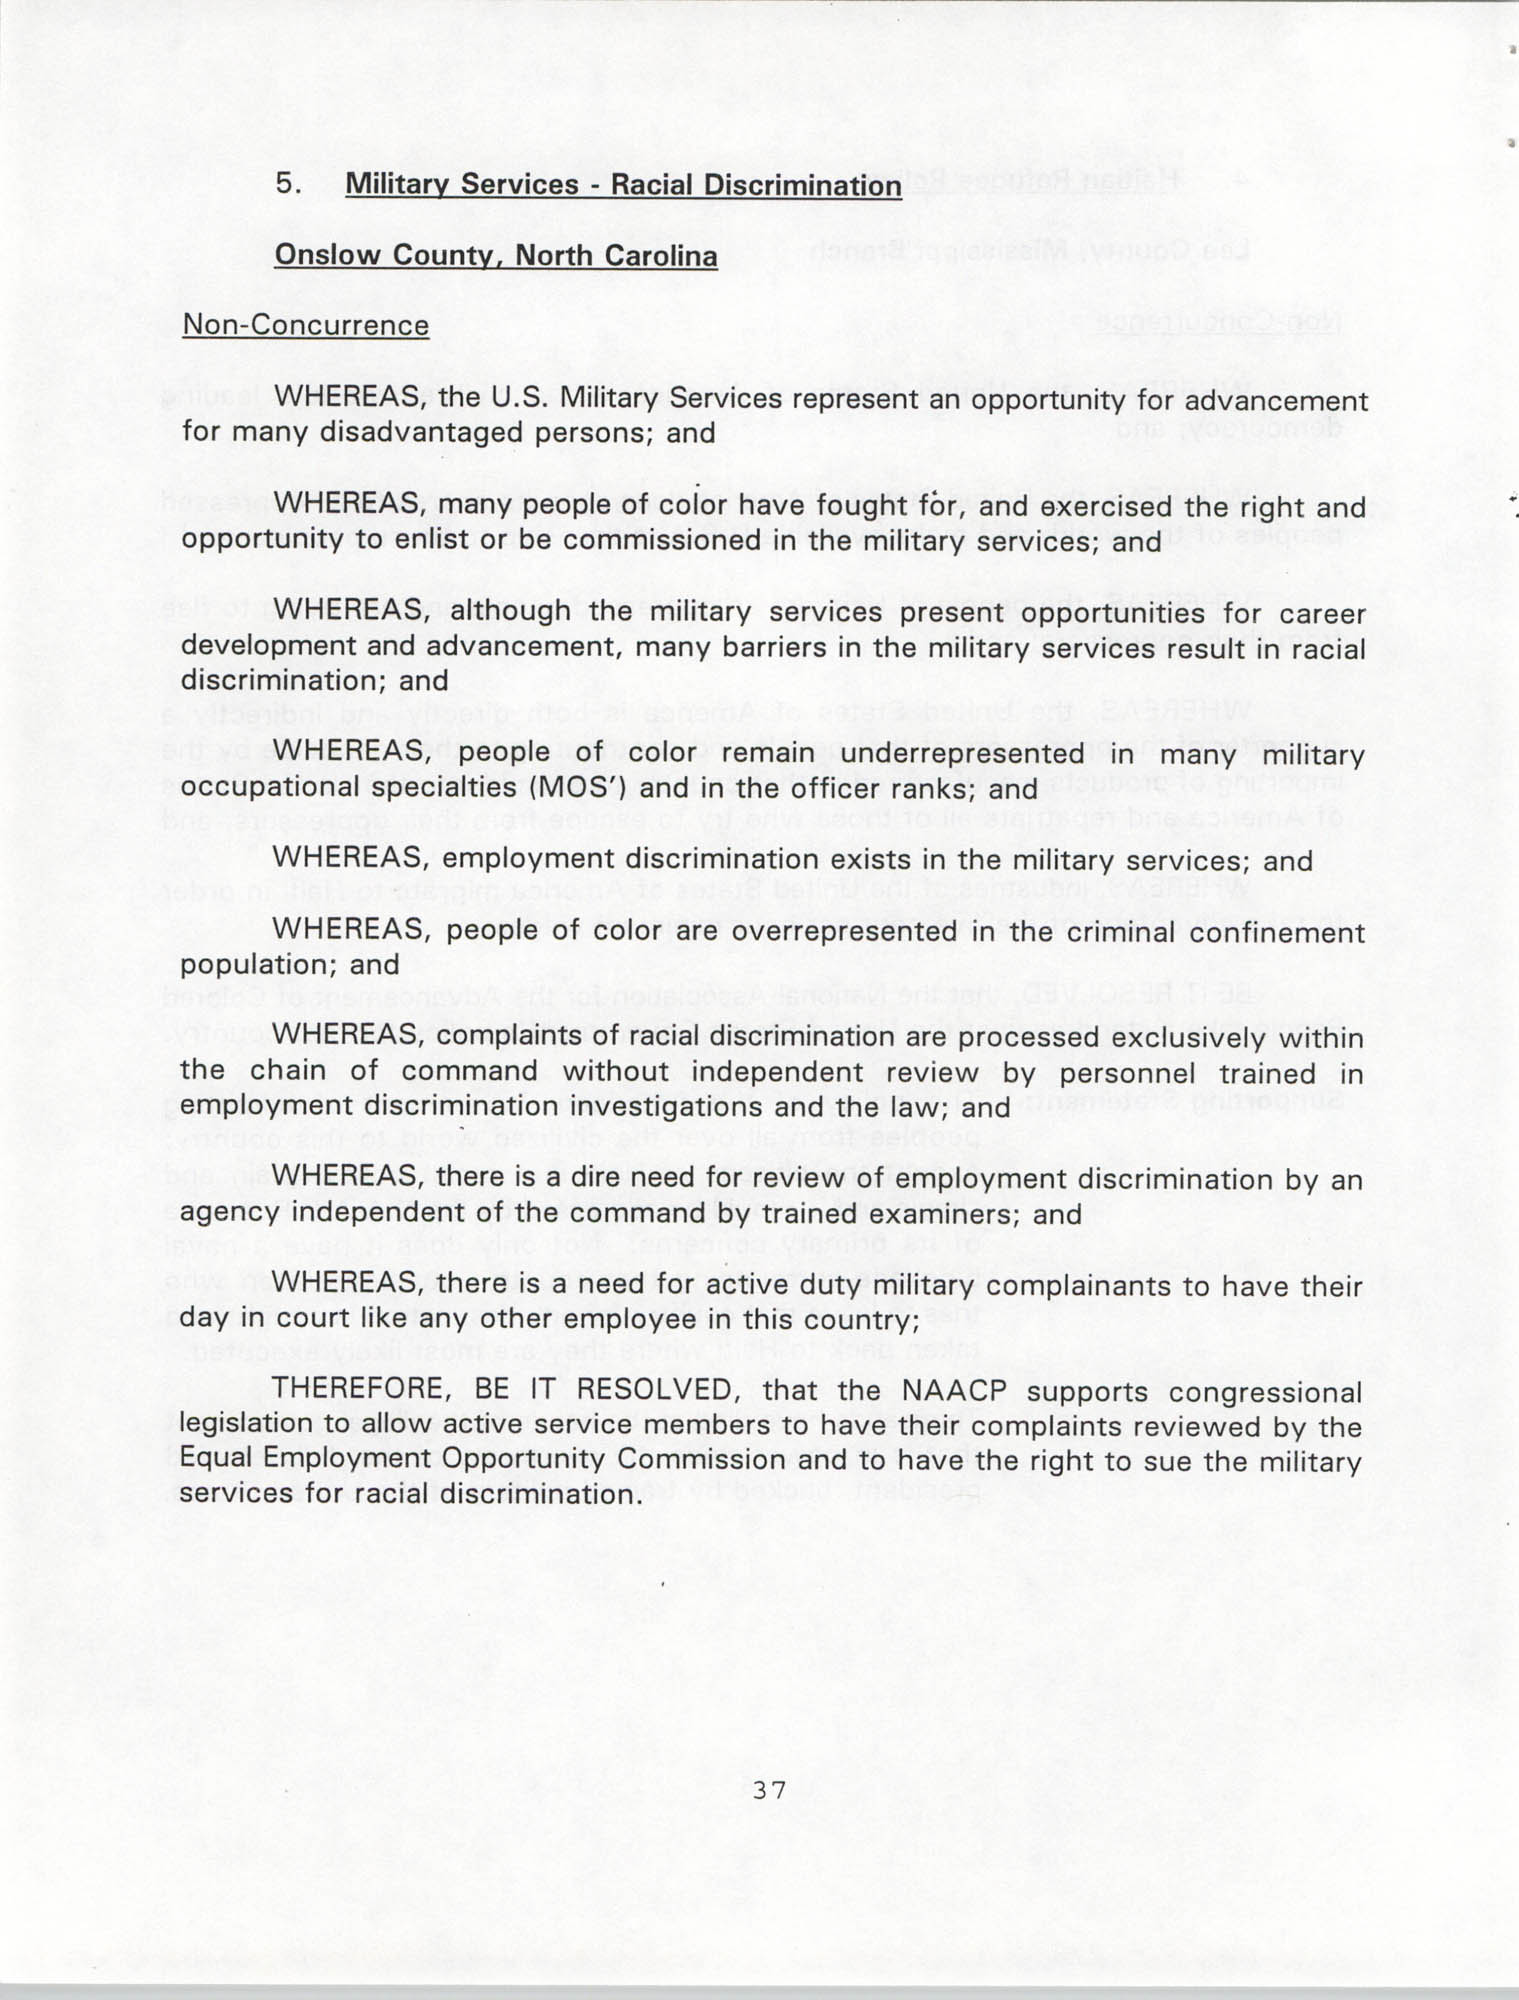 Resolutions Submitted Under Article X, Section 2 of the Constitution of the NAACP, 1994, Page 37